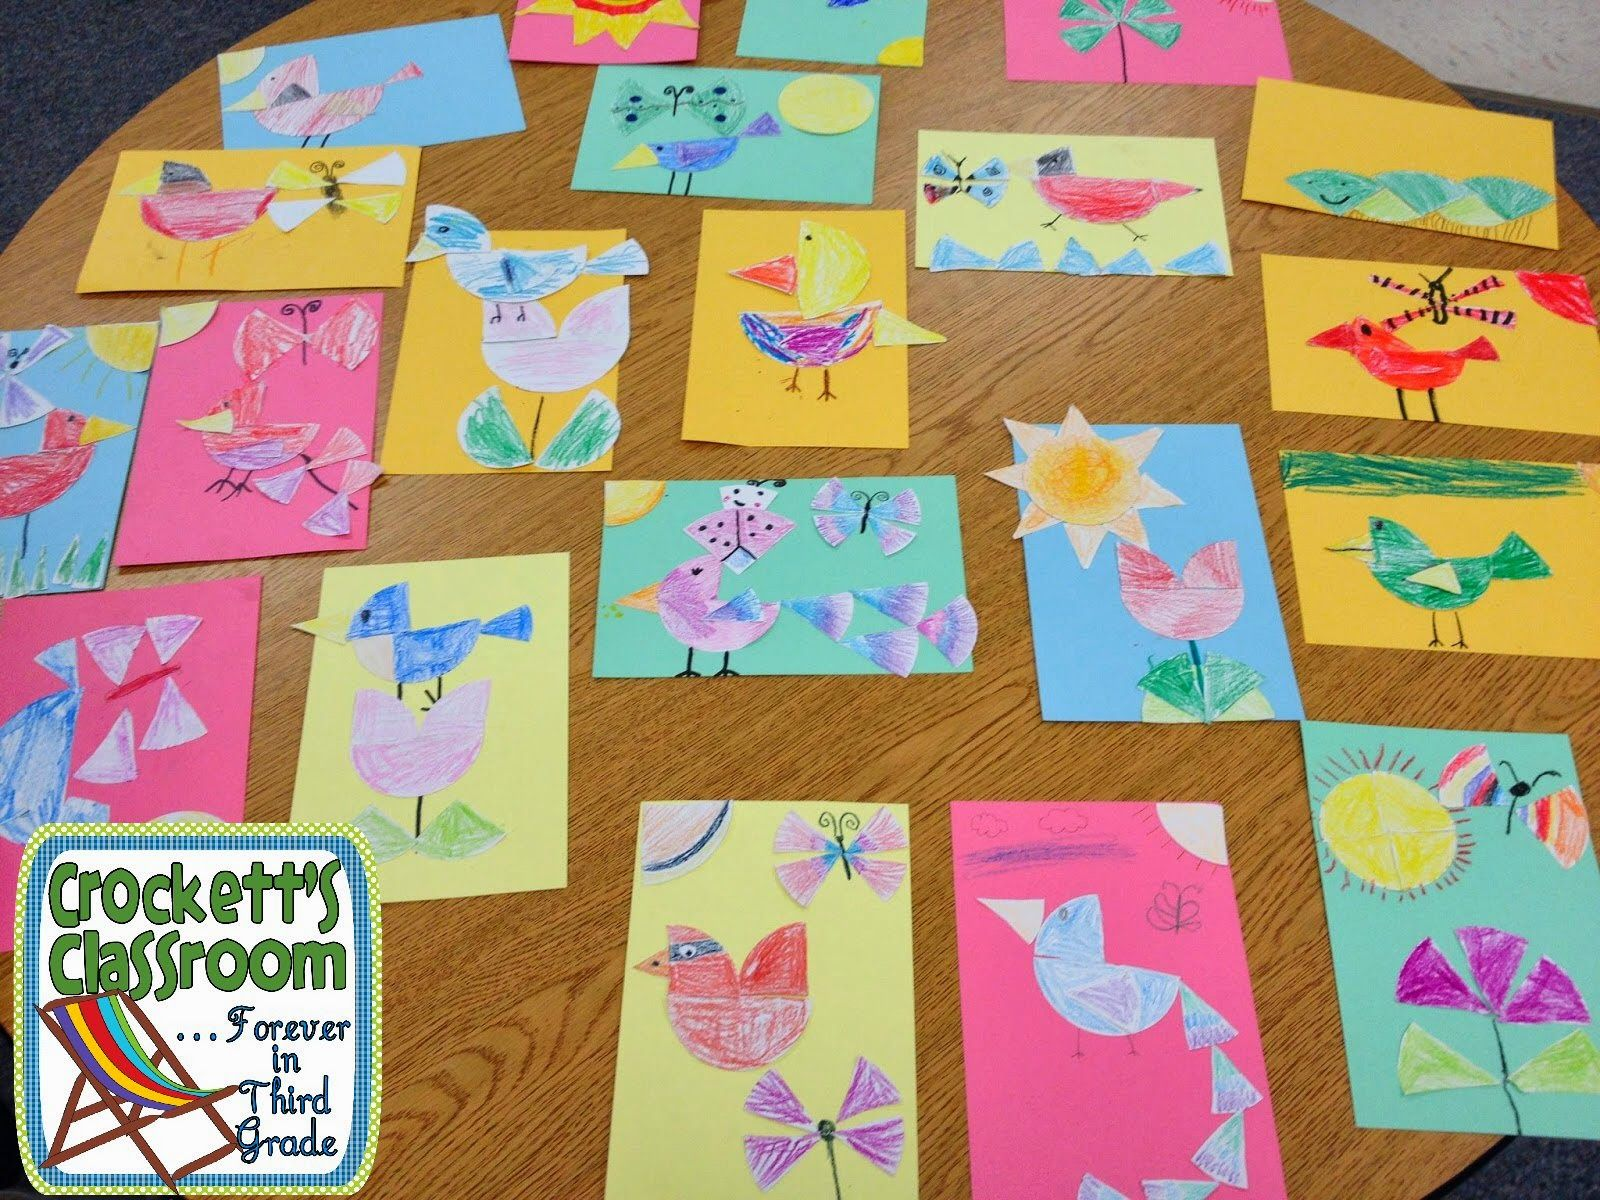 Fraction Art Activity Fun Way For Kids To Experience